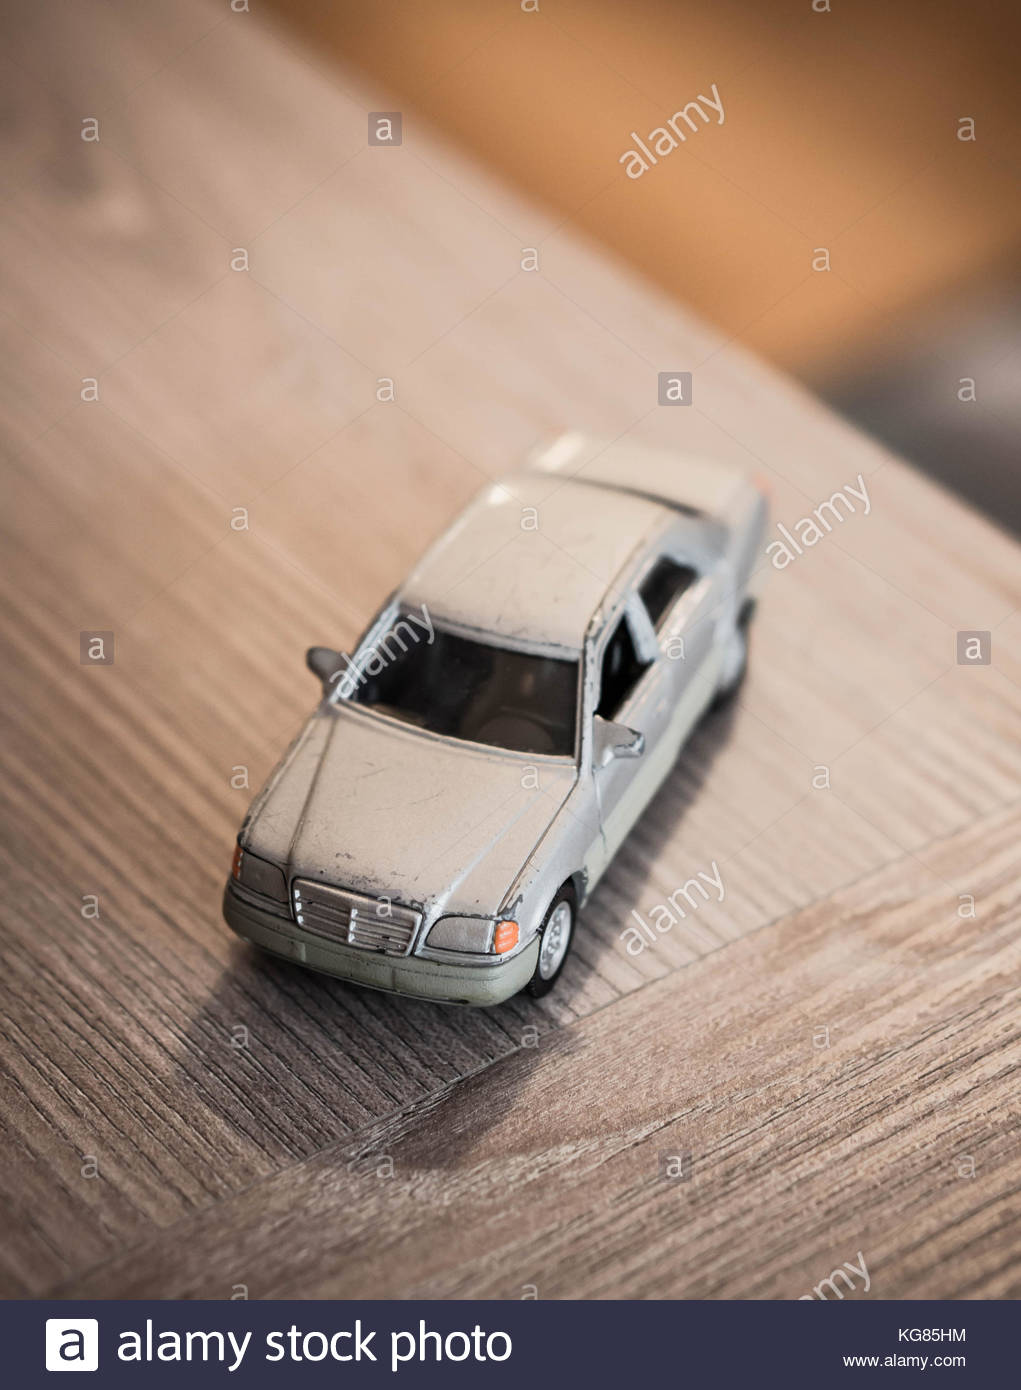 Old metal silver toy model Mercedes Benz car on a wooden table in soft focus - Stock Image